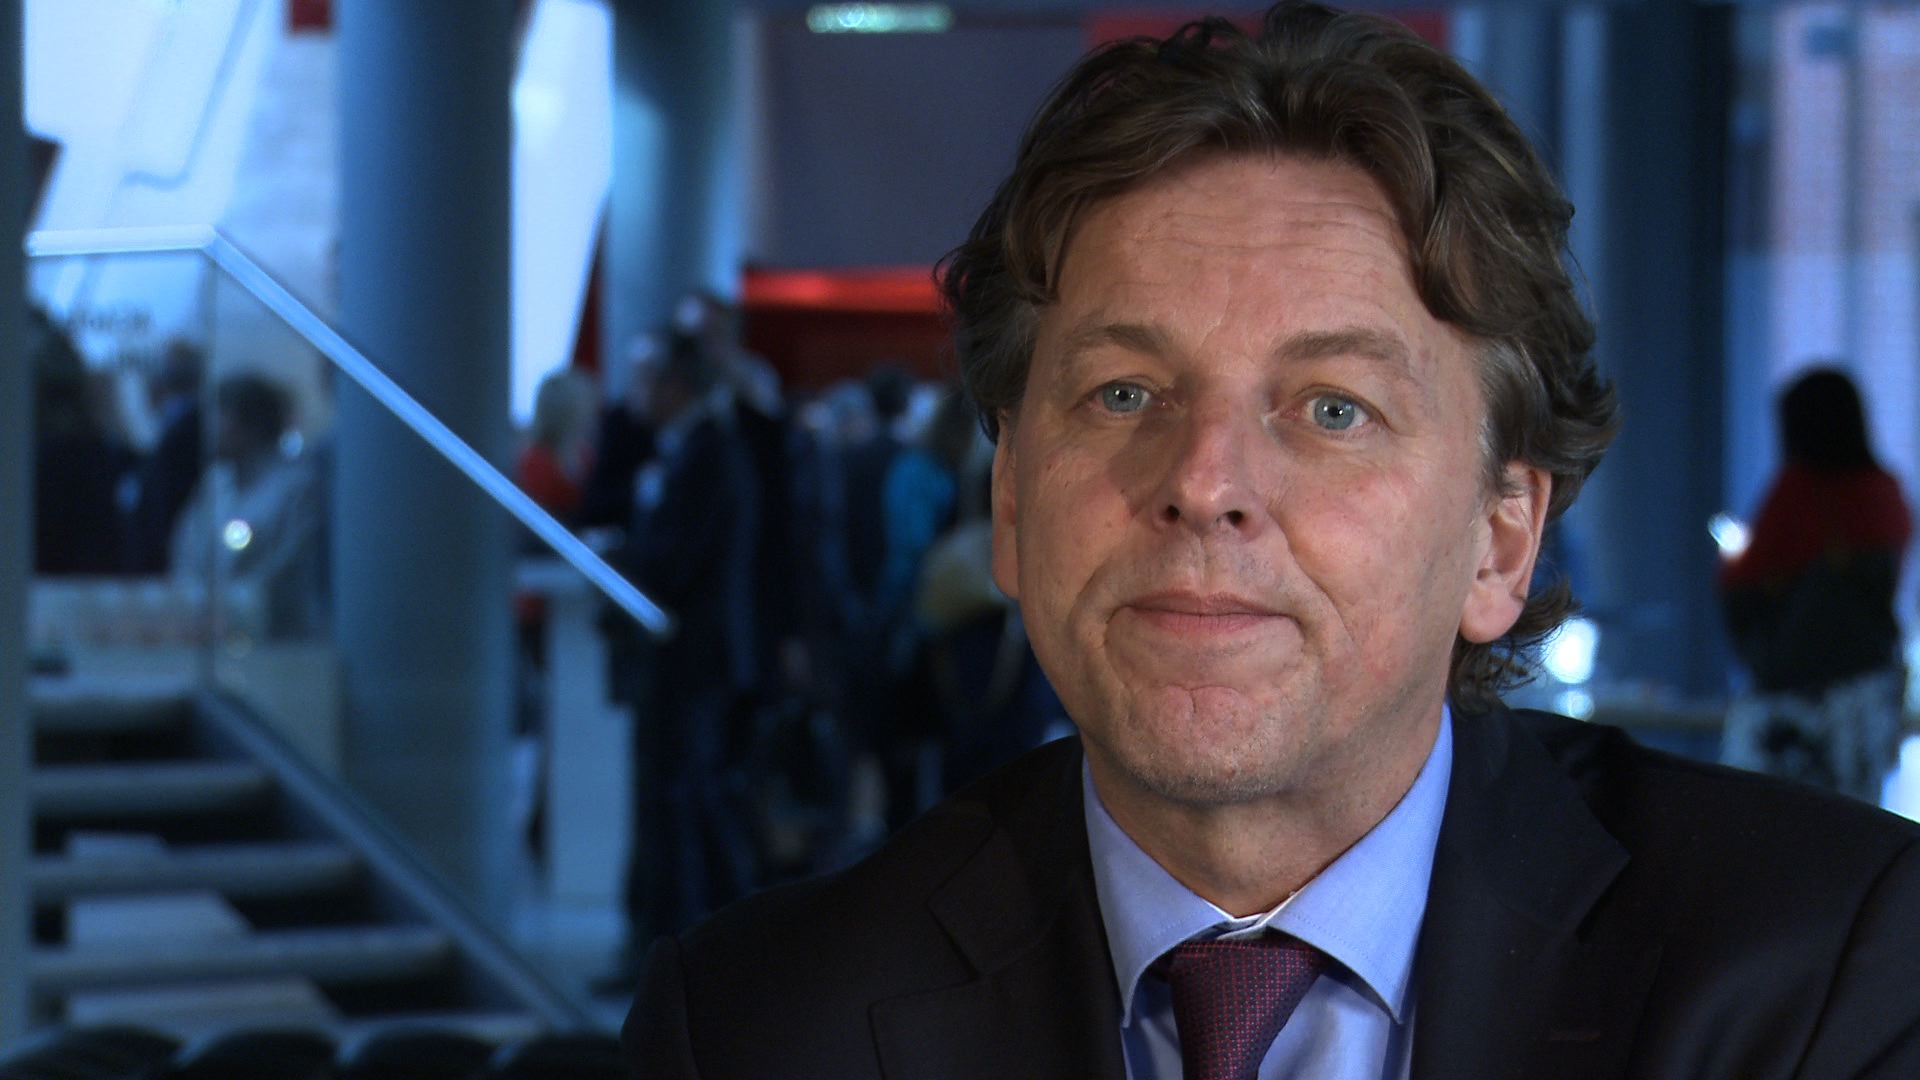 Image for videoInterview with Minister Koenders (Monday 2 November 2015)